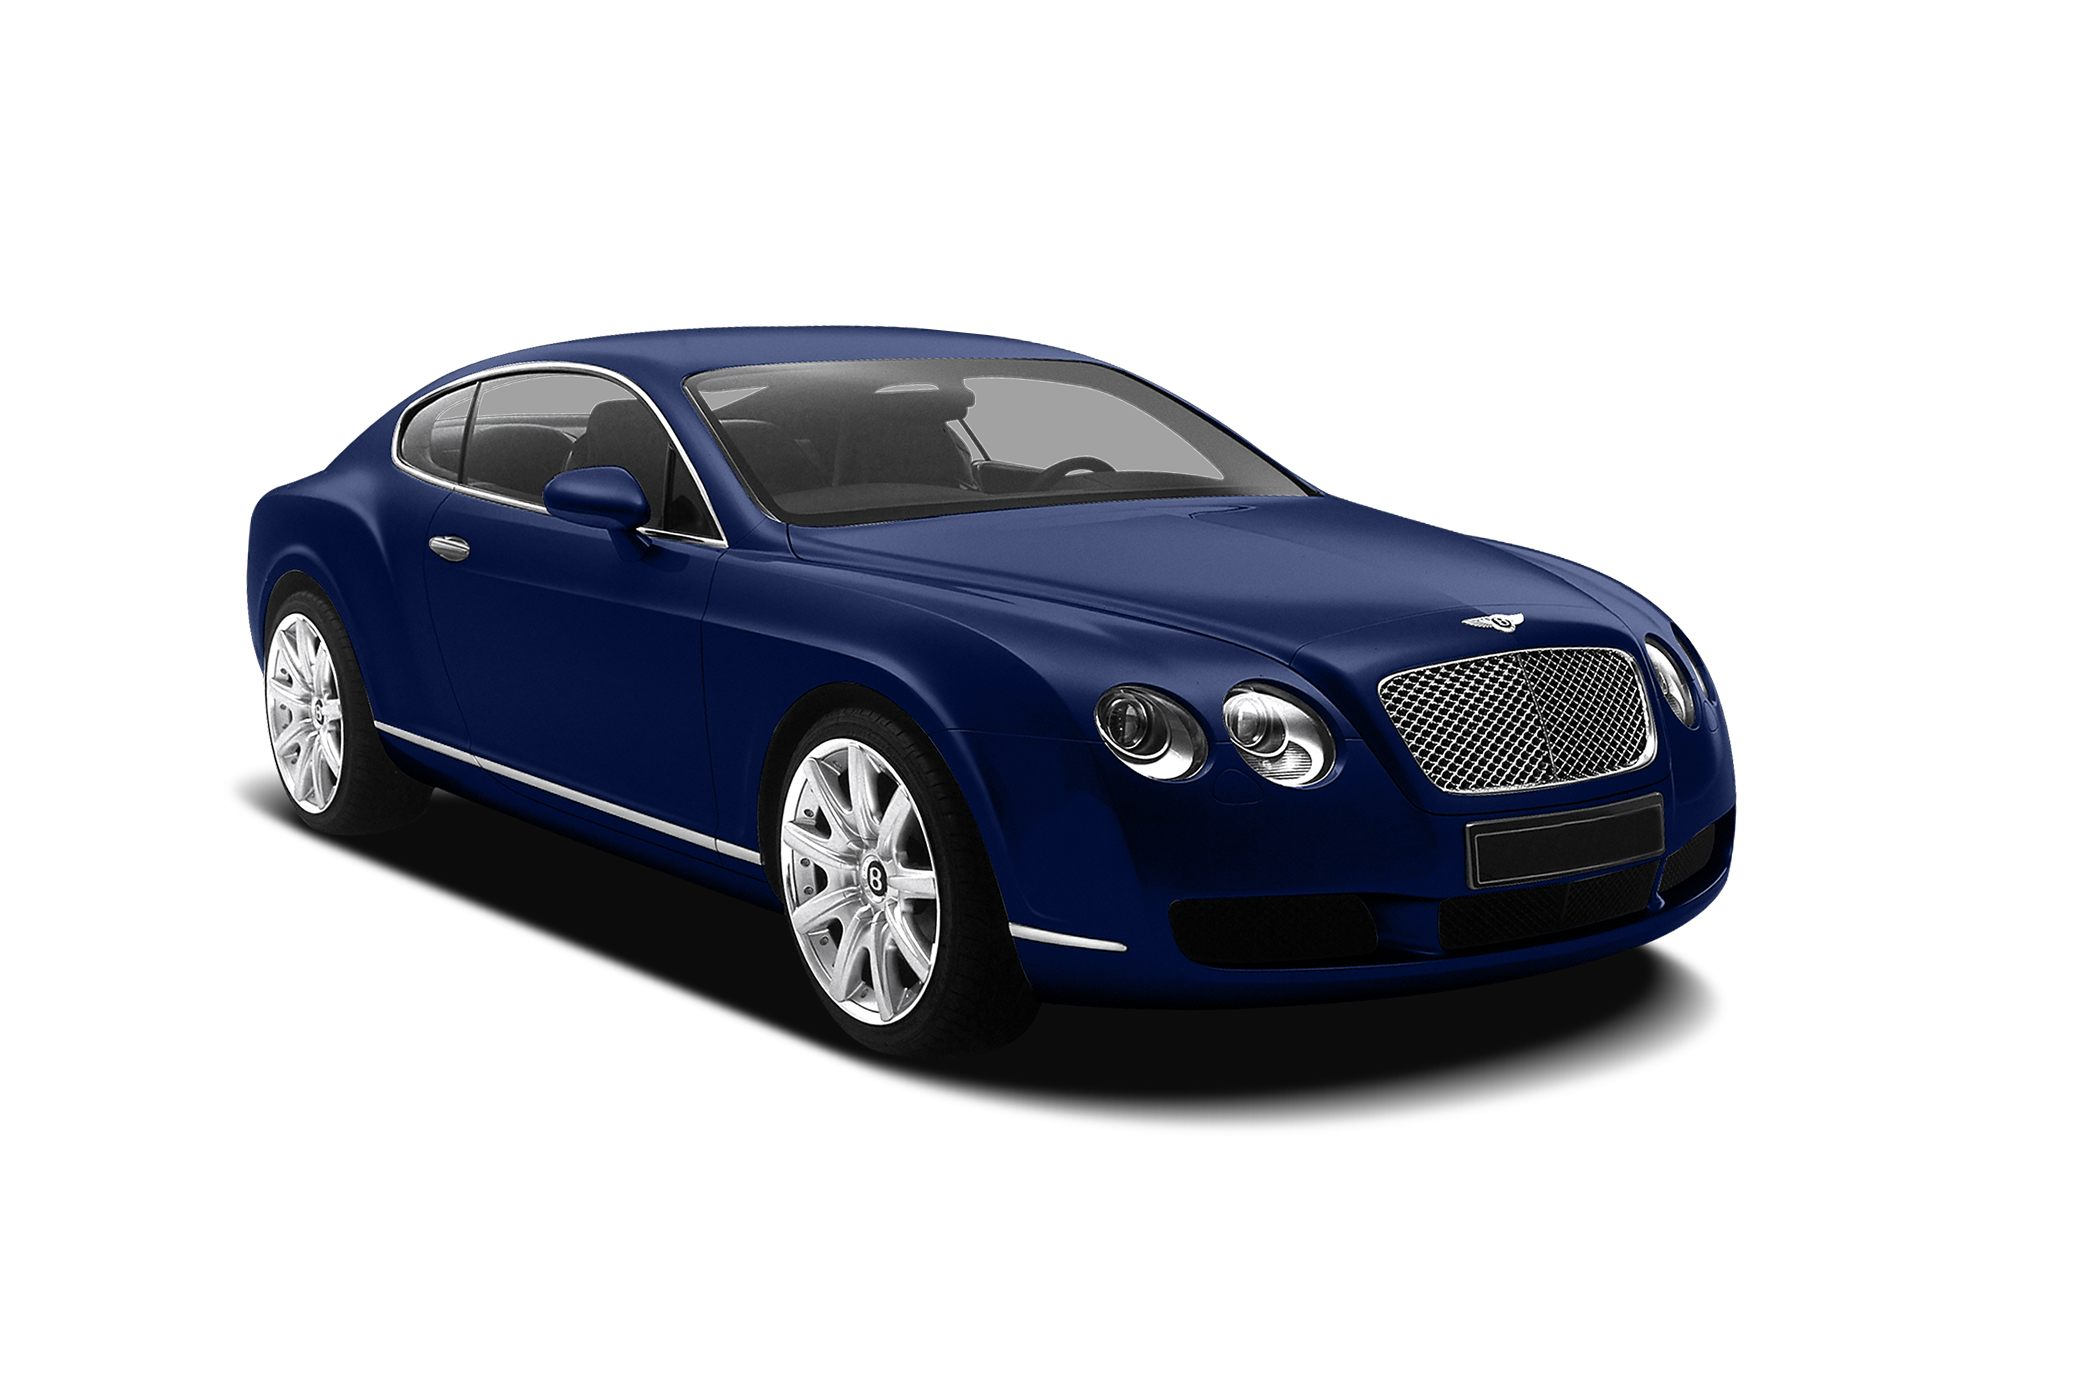 2009 Bentley Continental Gt Speed Coupe Specs And Prices